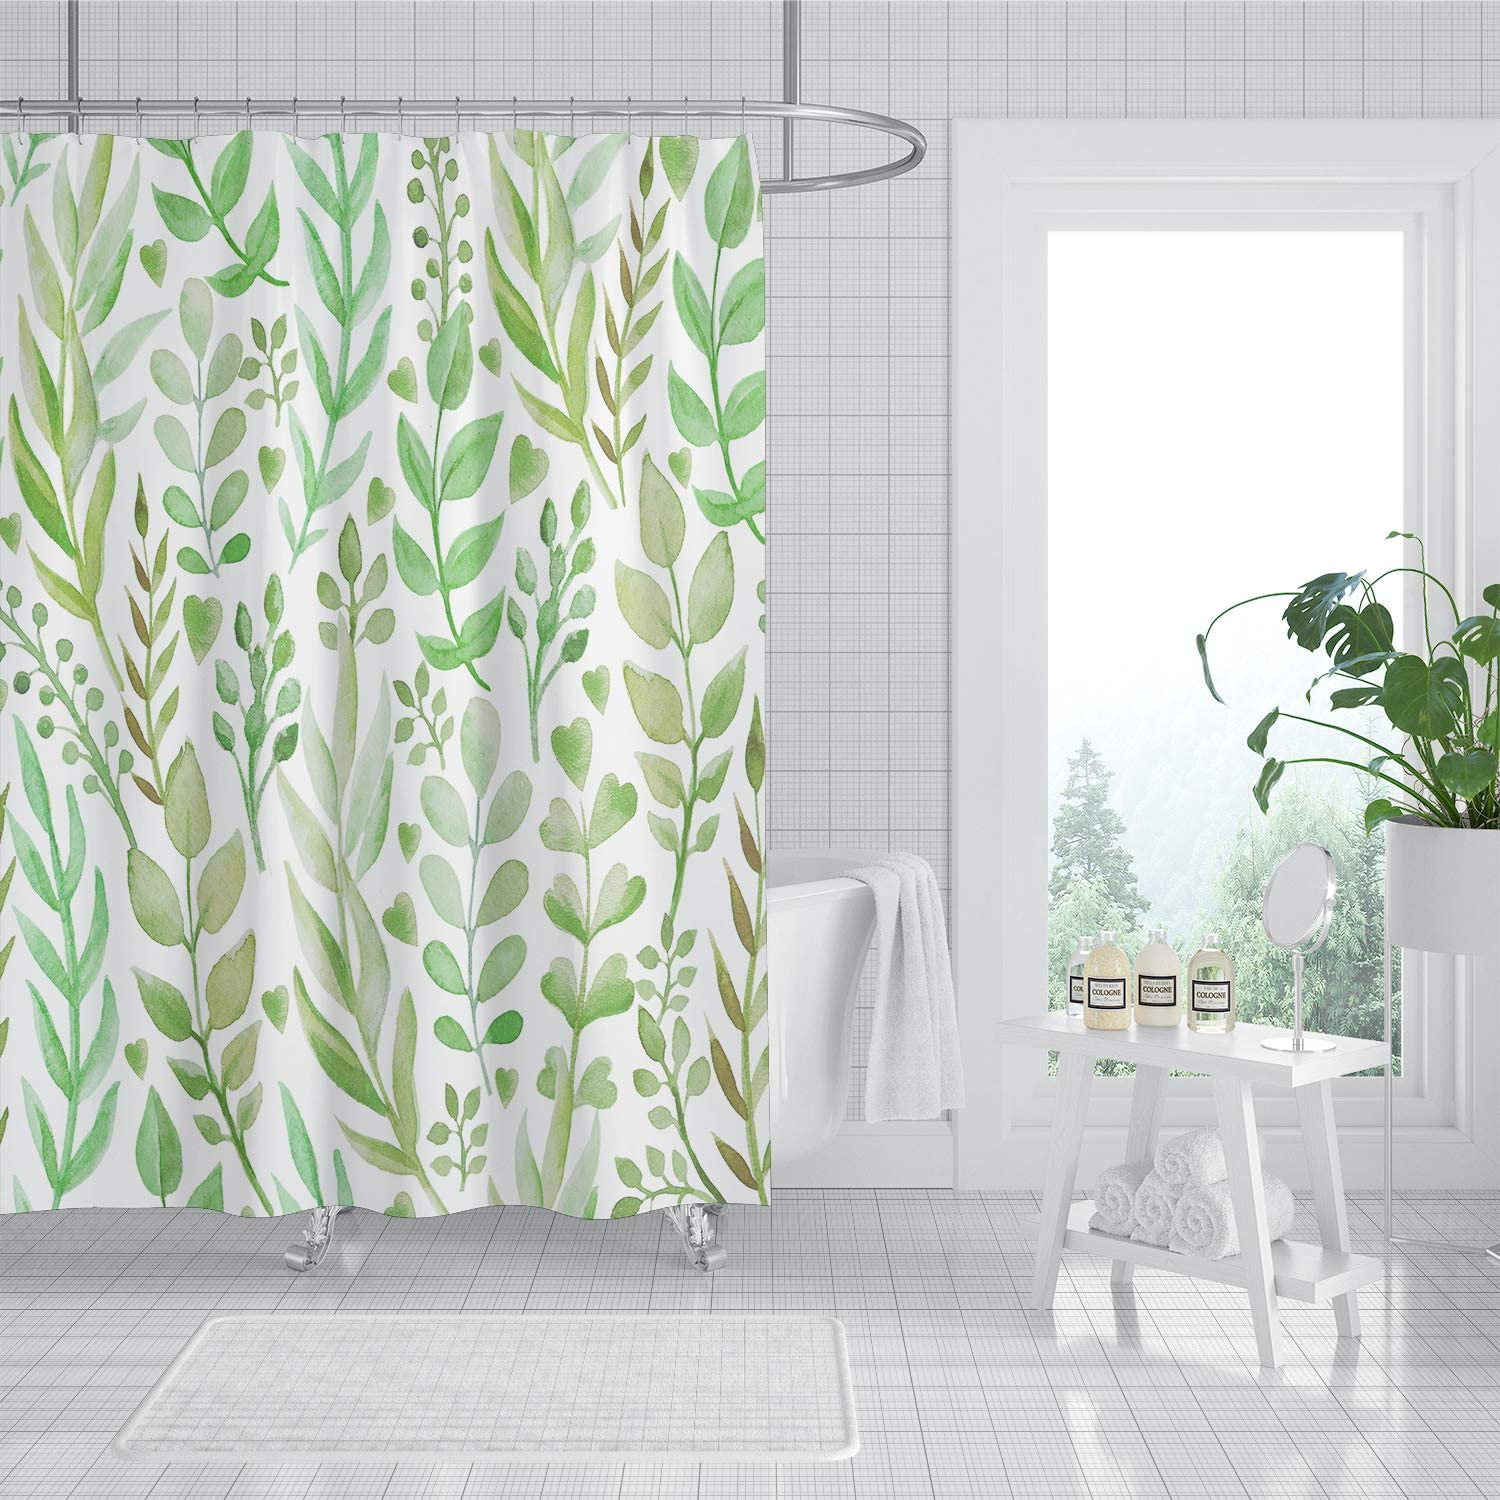 180x180cm Colorful Tree Leaves Waterproof Bathroom Shower Curtain With 12